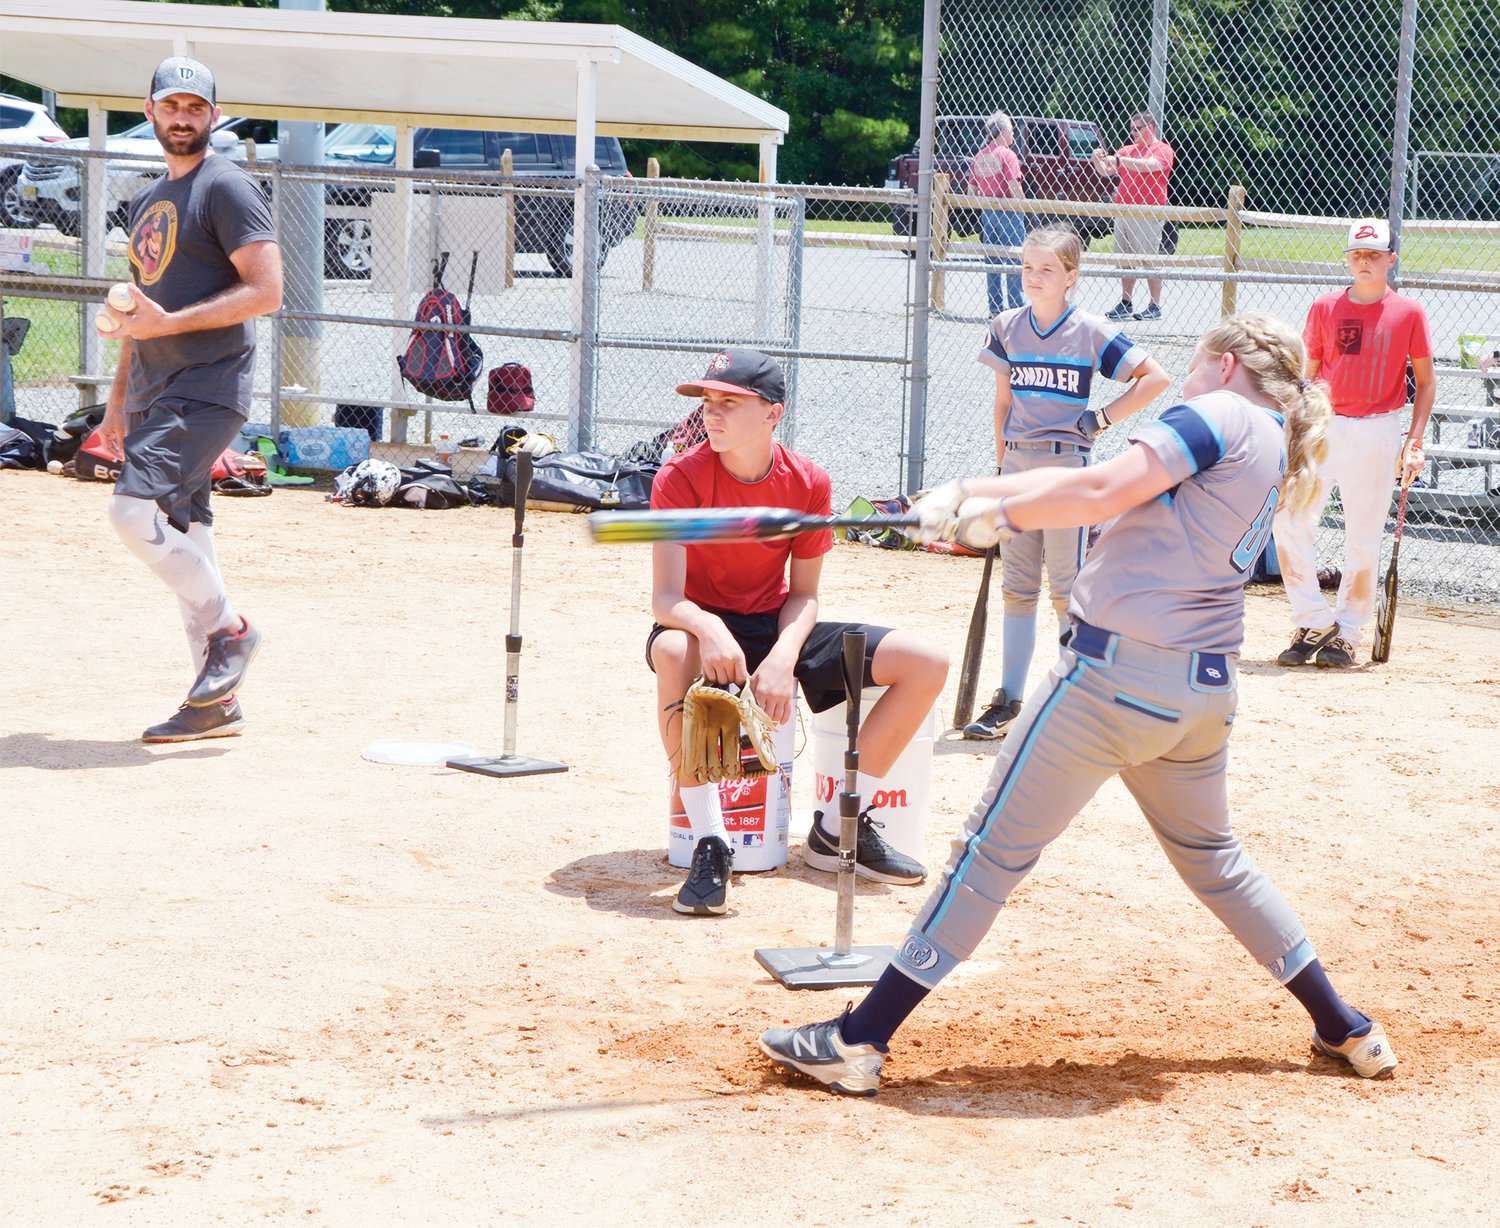 Layla Worley, 11, takes a powerful swing in the baseball clinic at Bray Park. She was one of the two softball players who took advantage of the teaching experience.